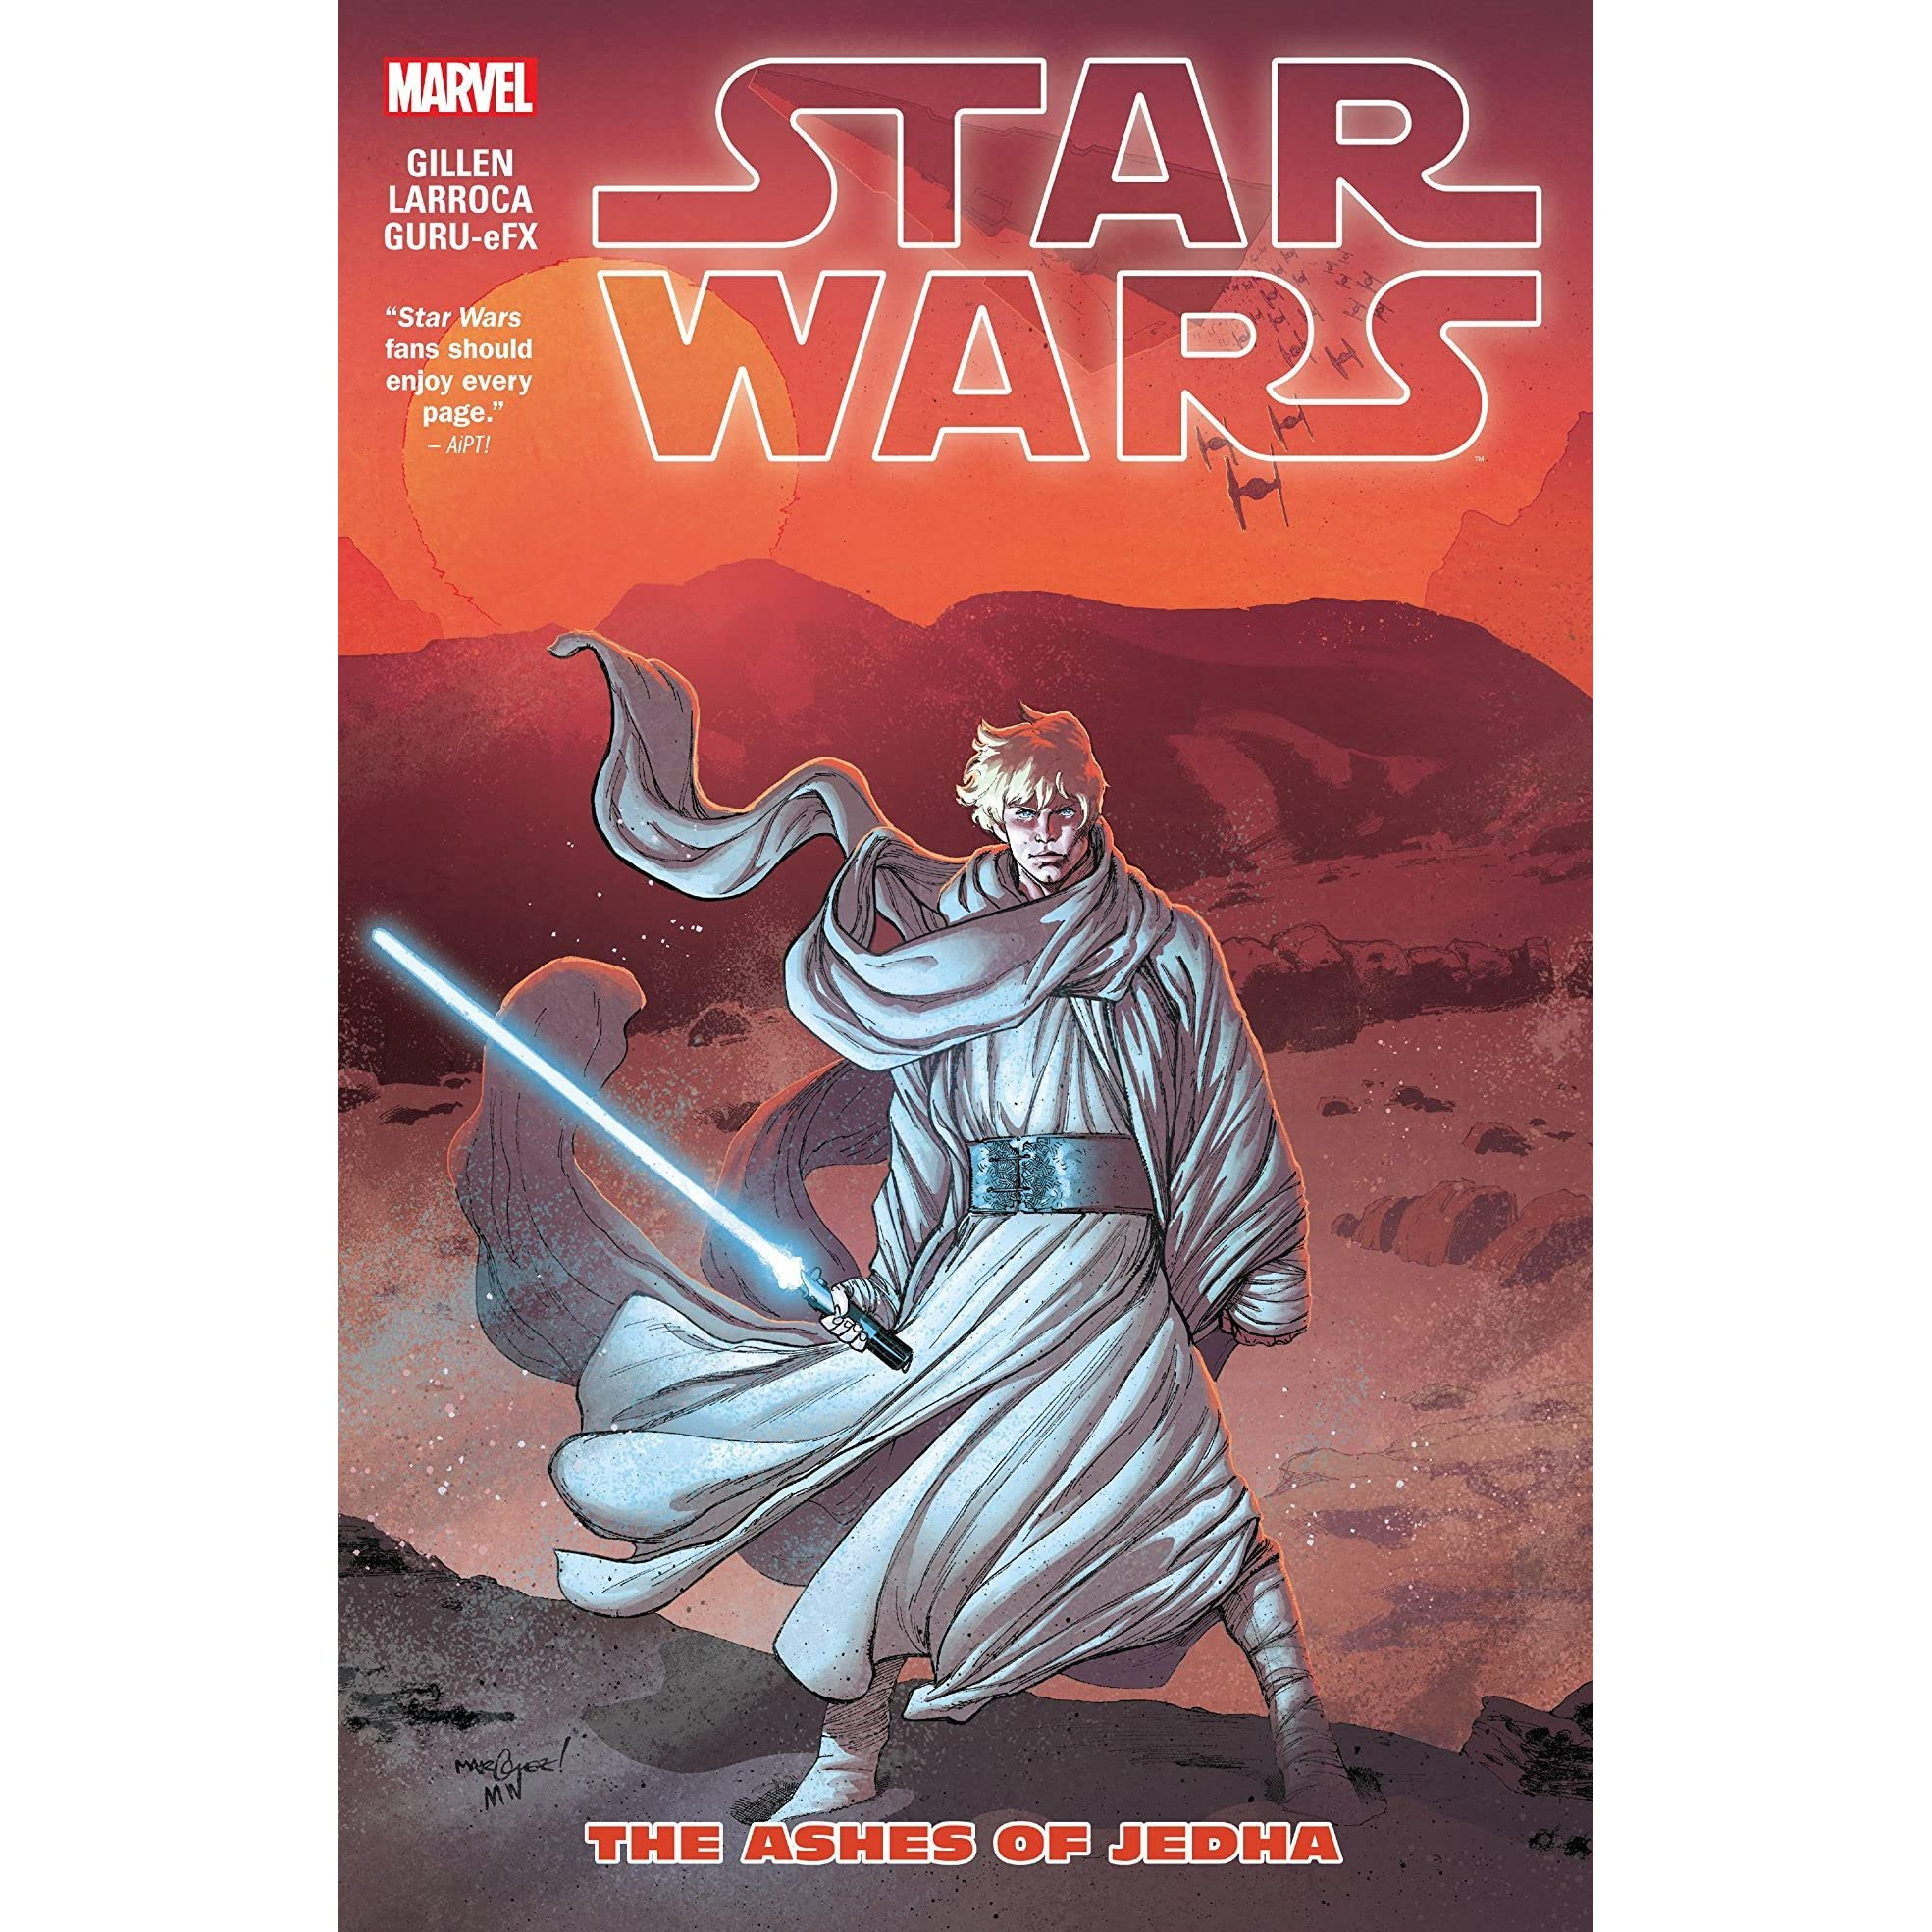 Star Wars Vol 7 The Ashes Of Jedha By Kieron Gillen